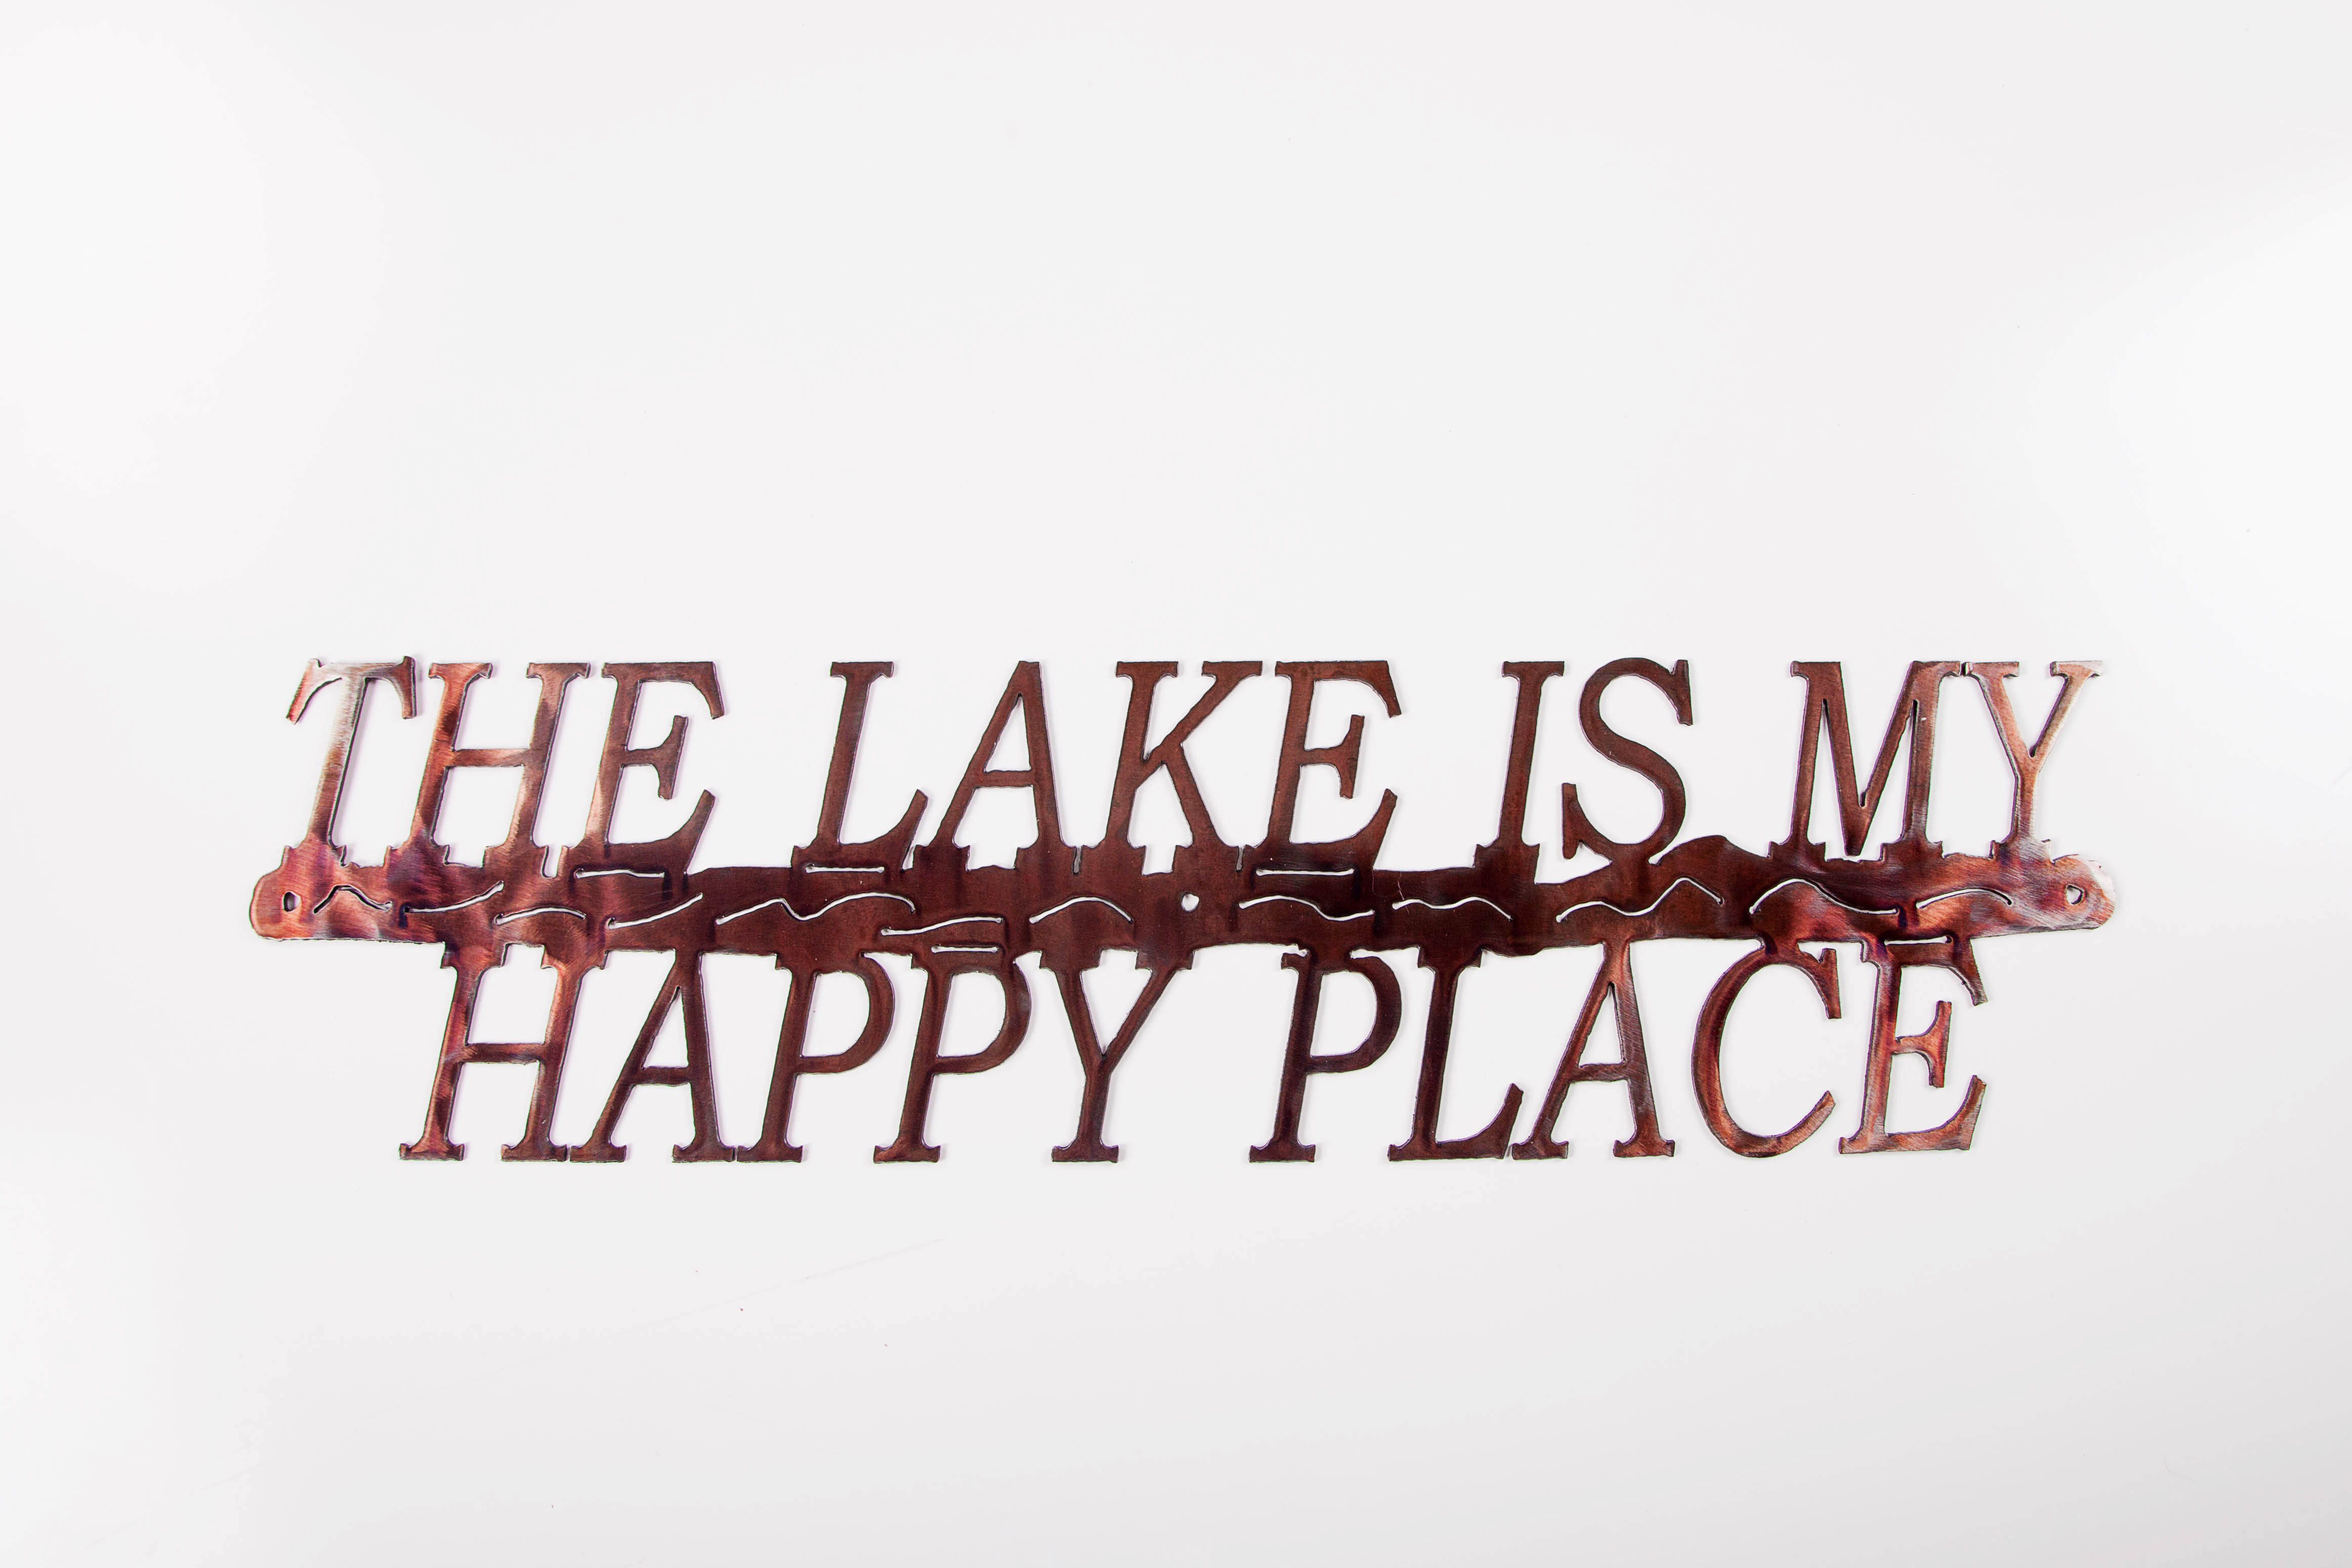 The Lake is my Happy Place